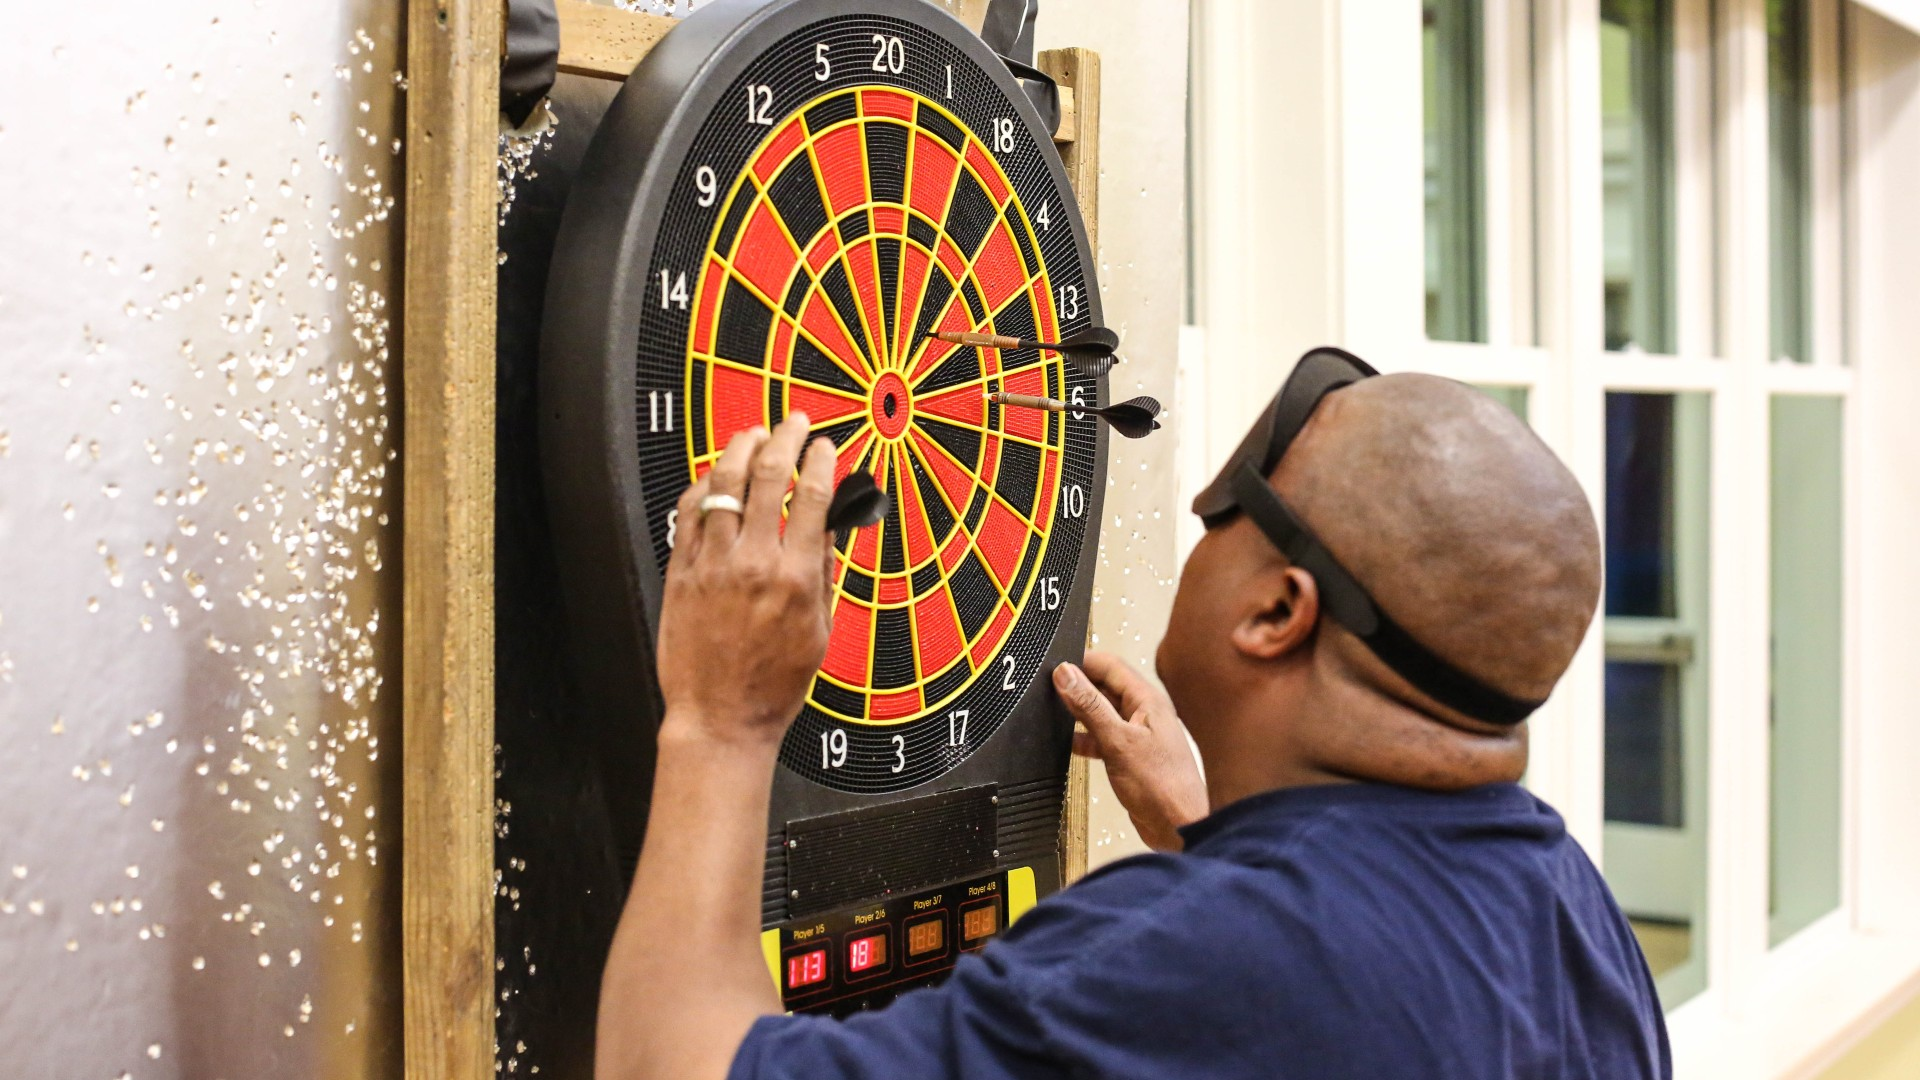 A person playing darts as part of an SRIS program